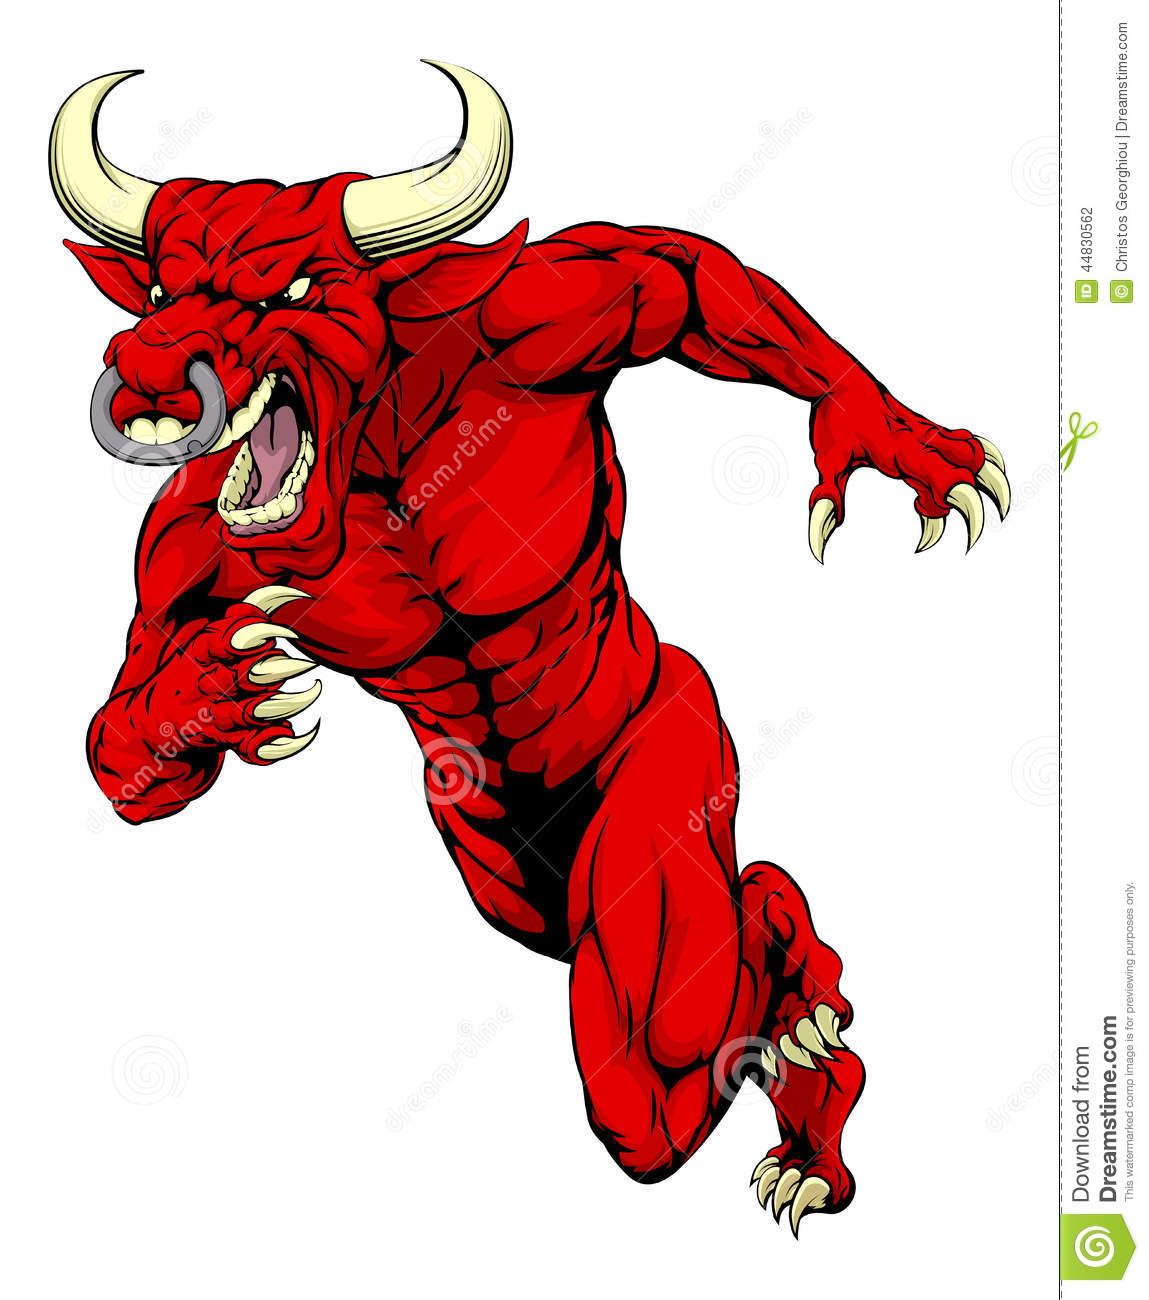 ... illustration of a mean tough looking red bull sports mascot sprinting